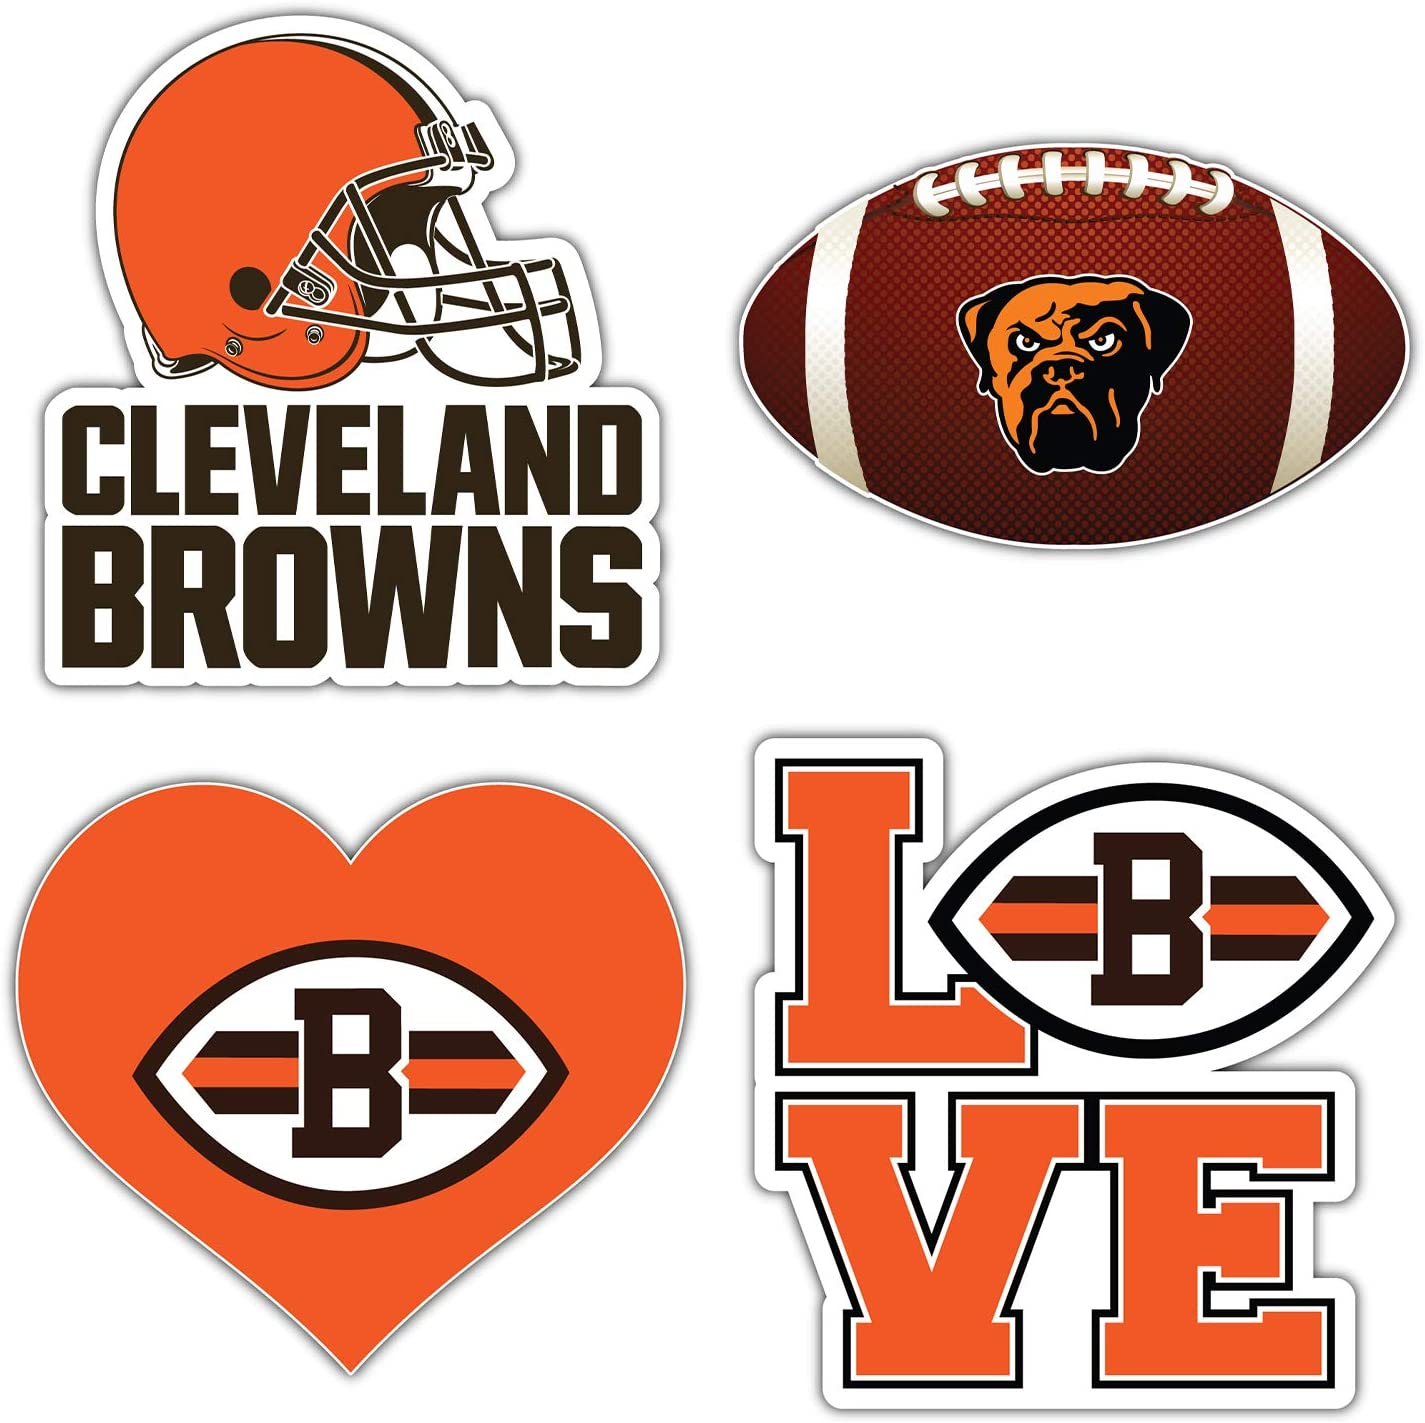 qualityprint Cleveland Browns Set of 4 NFL Football Car Bumper Stickers Decals 5 Longer Side